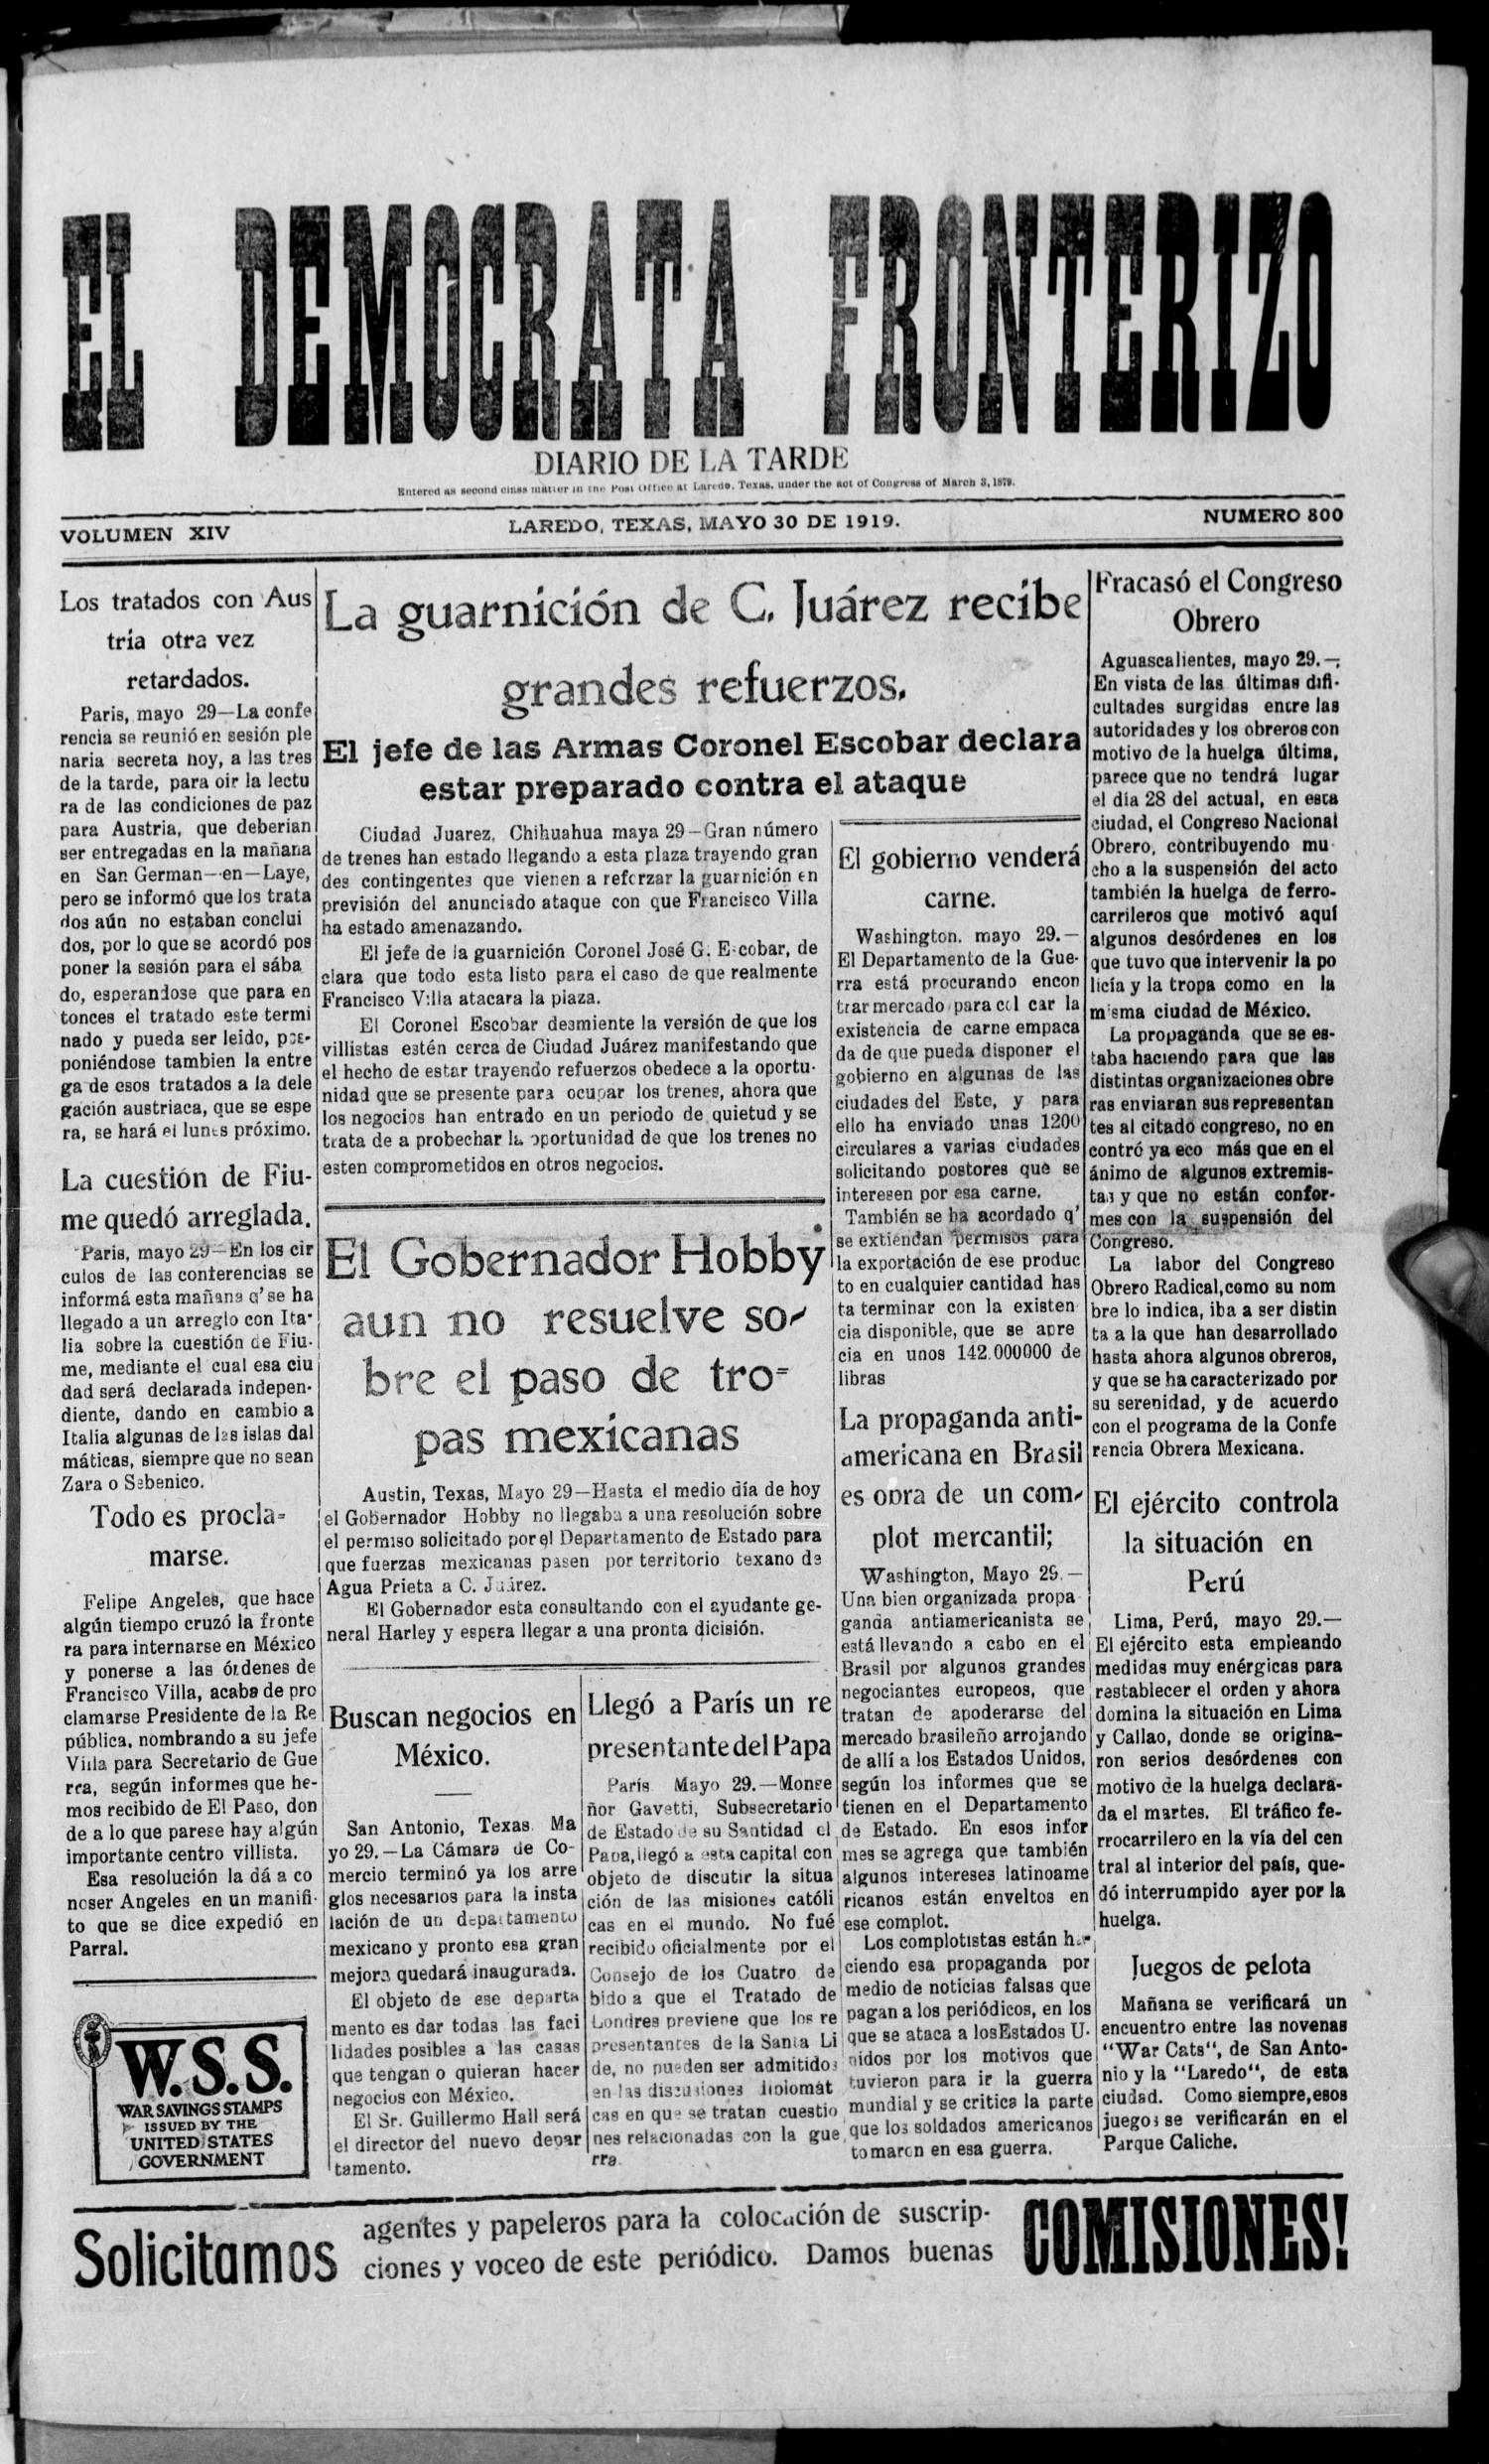 El Democrata Fronterizo. (Laredo, Tex.), Vol. 14, No. 800, Ed. 1 Friday, May 30, 1919                                                                                                      [Sequence #]: 1 of 4